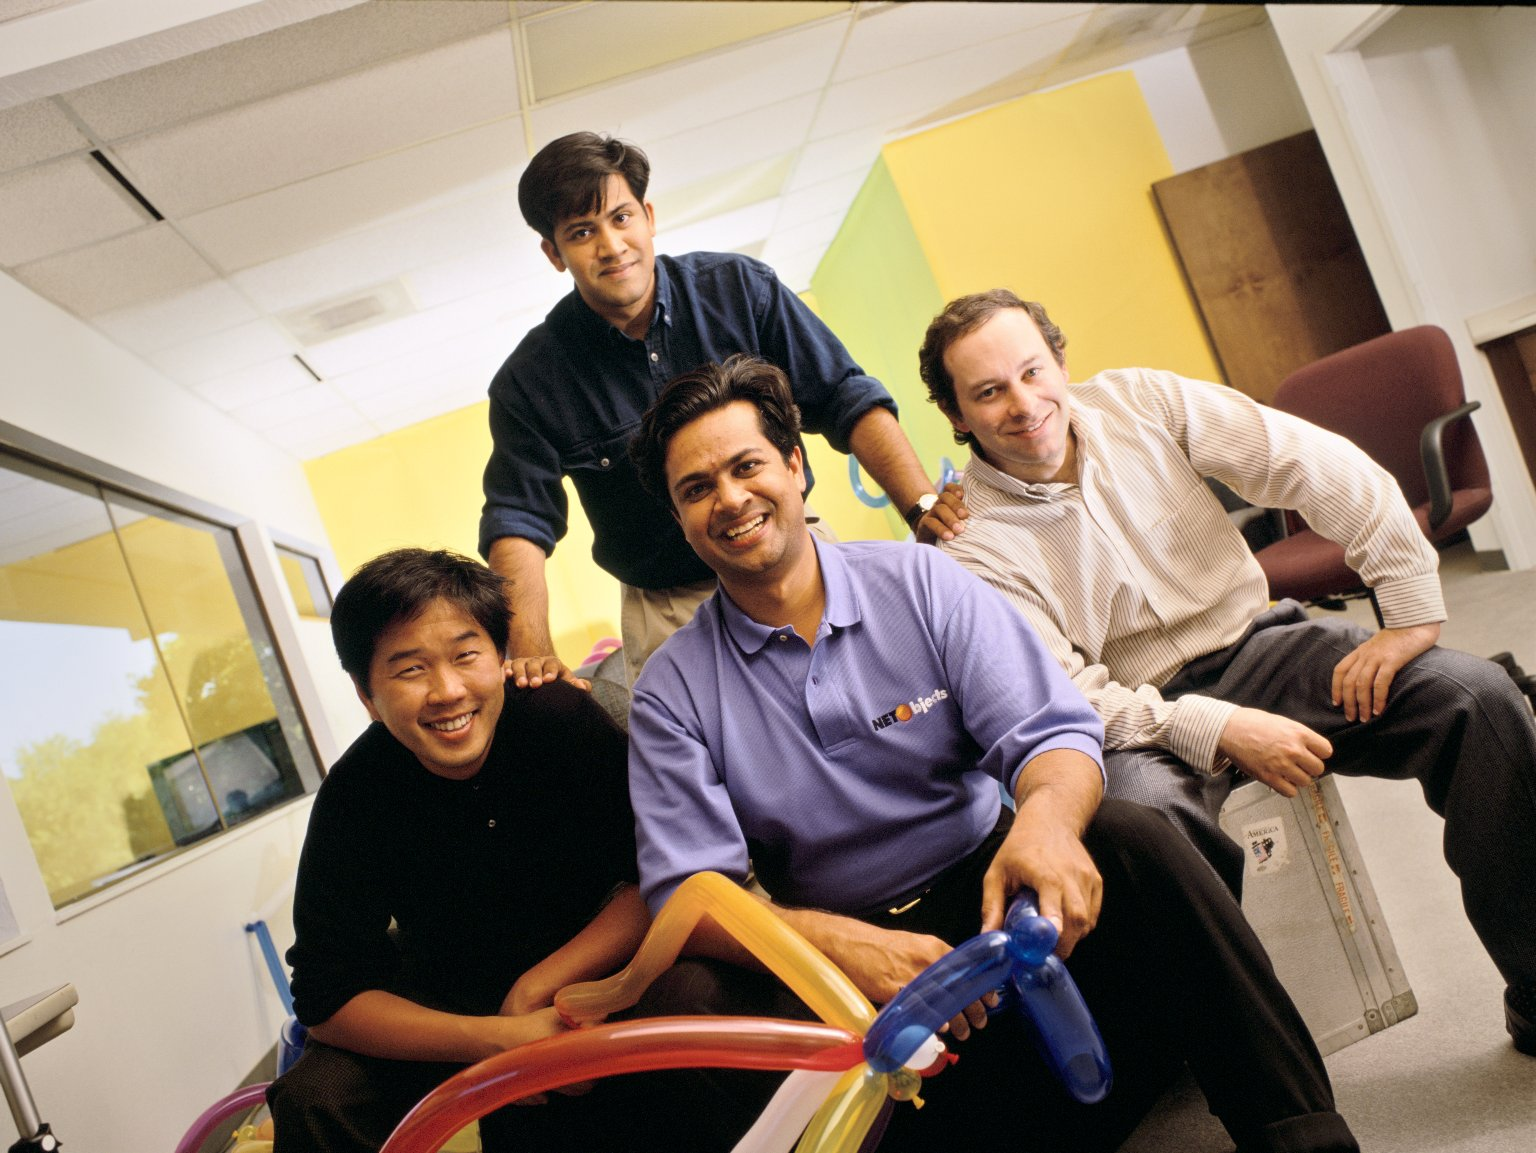 The co-founders of NetObjects (left to right): Clement Mok, Samir Arora and David Kleinberg, along with Vice President of Product Development Sal Arora (standing).